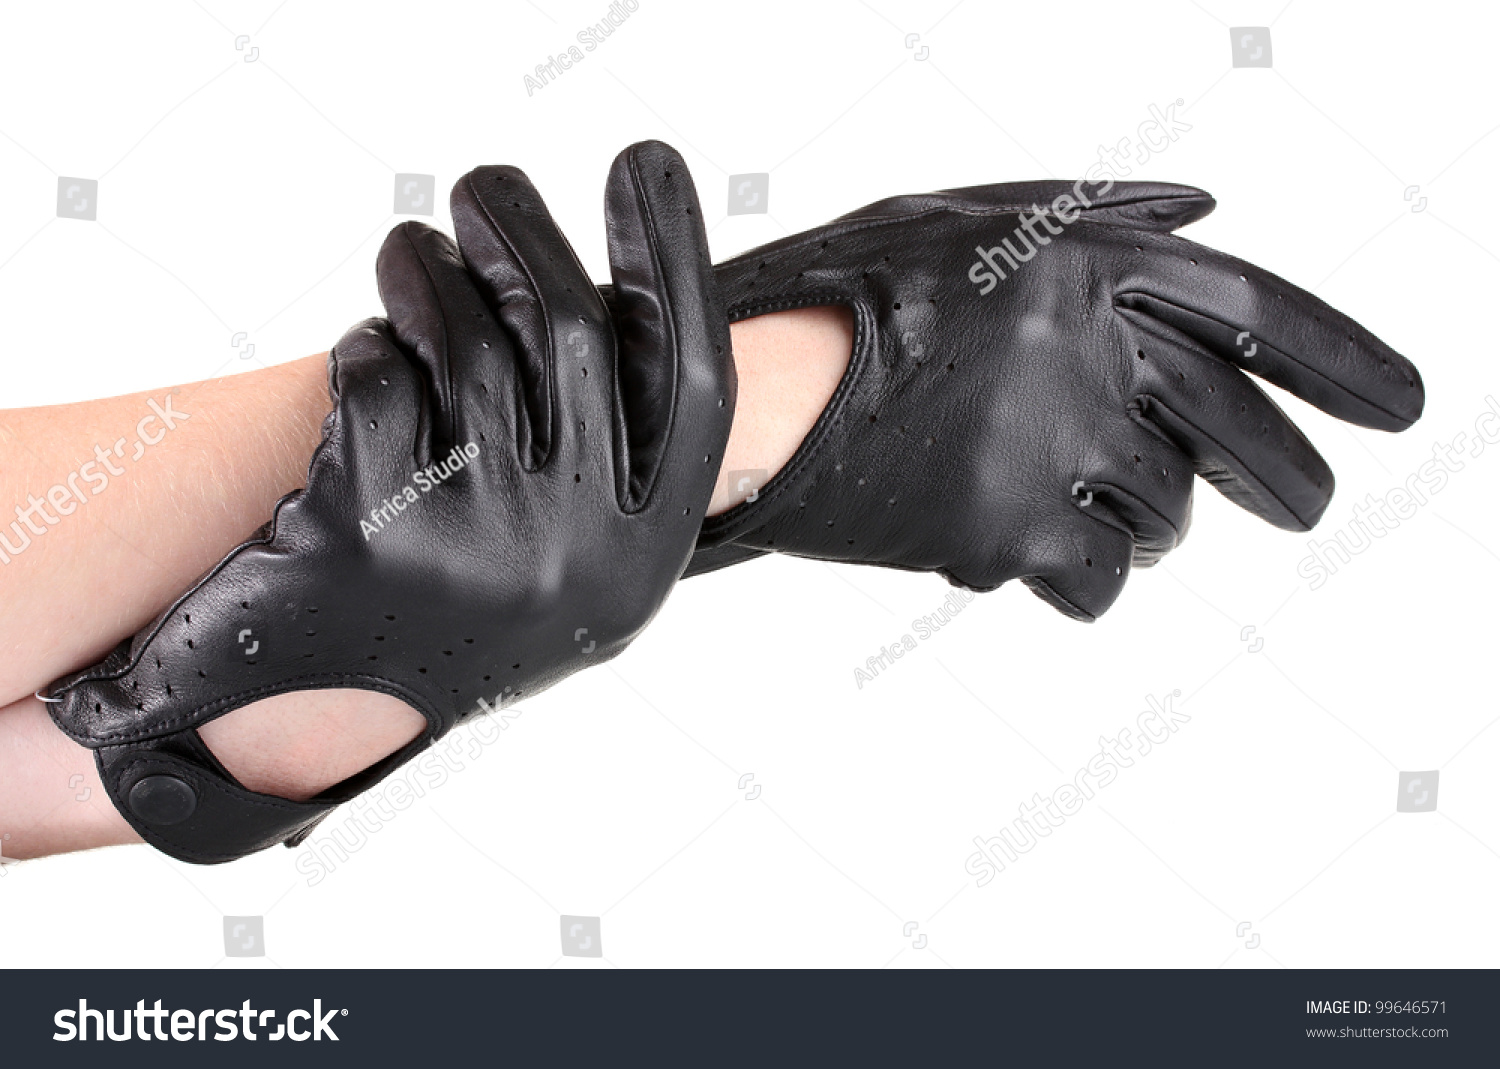 Black leather gloves with coloured fingers -  Black Leather Gloves Isolated On White Preview Save To A Lightbox